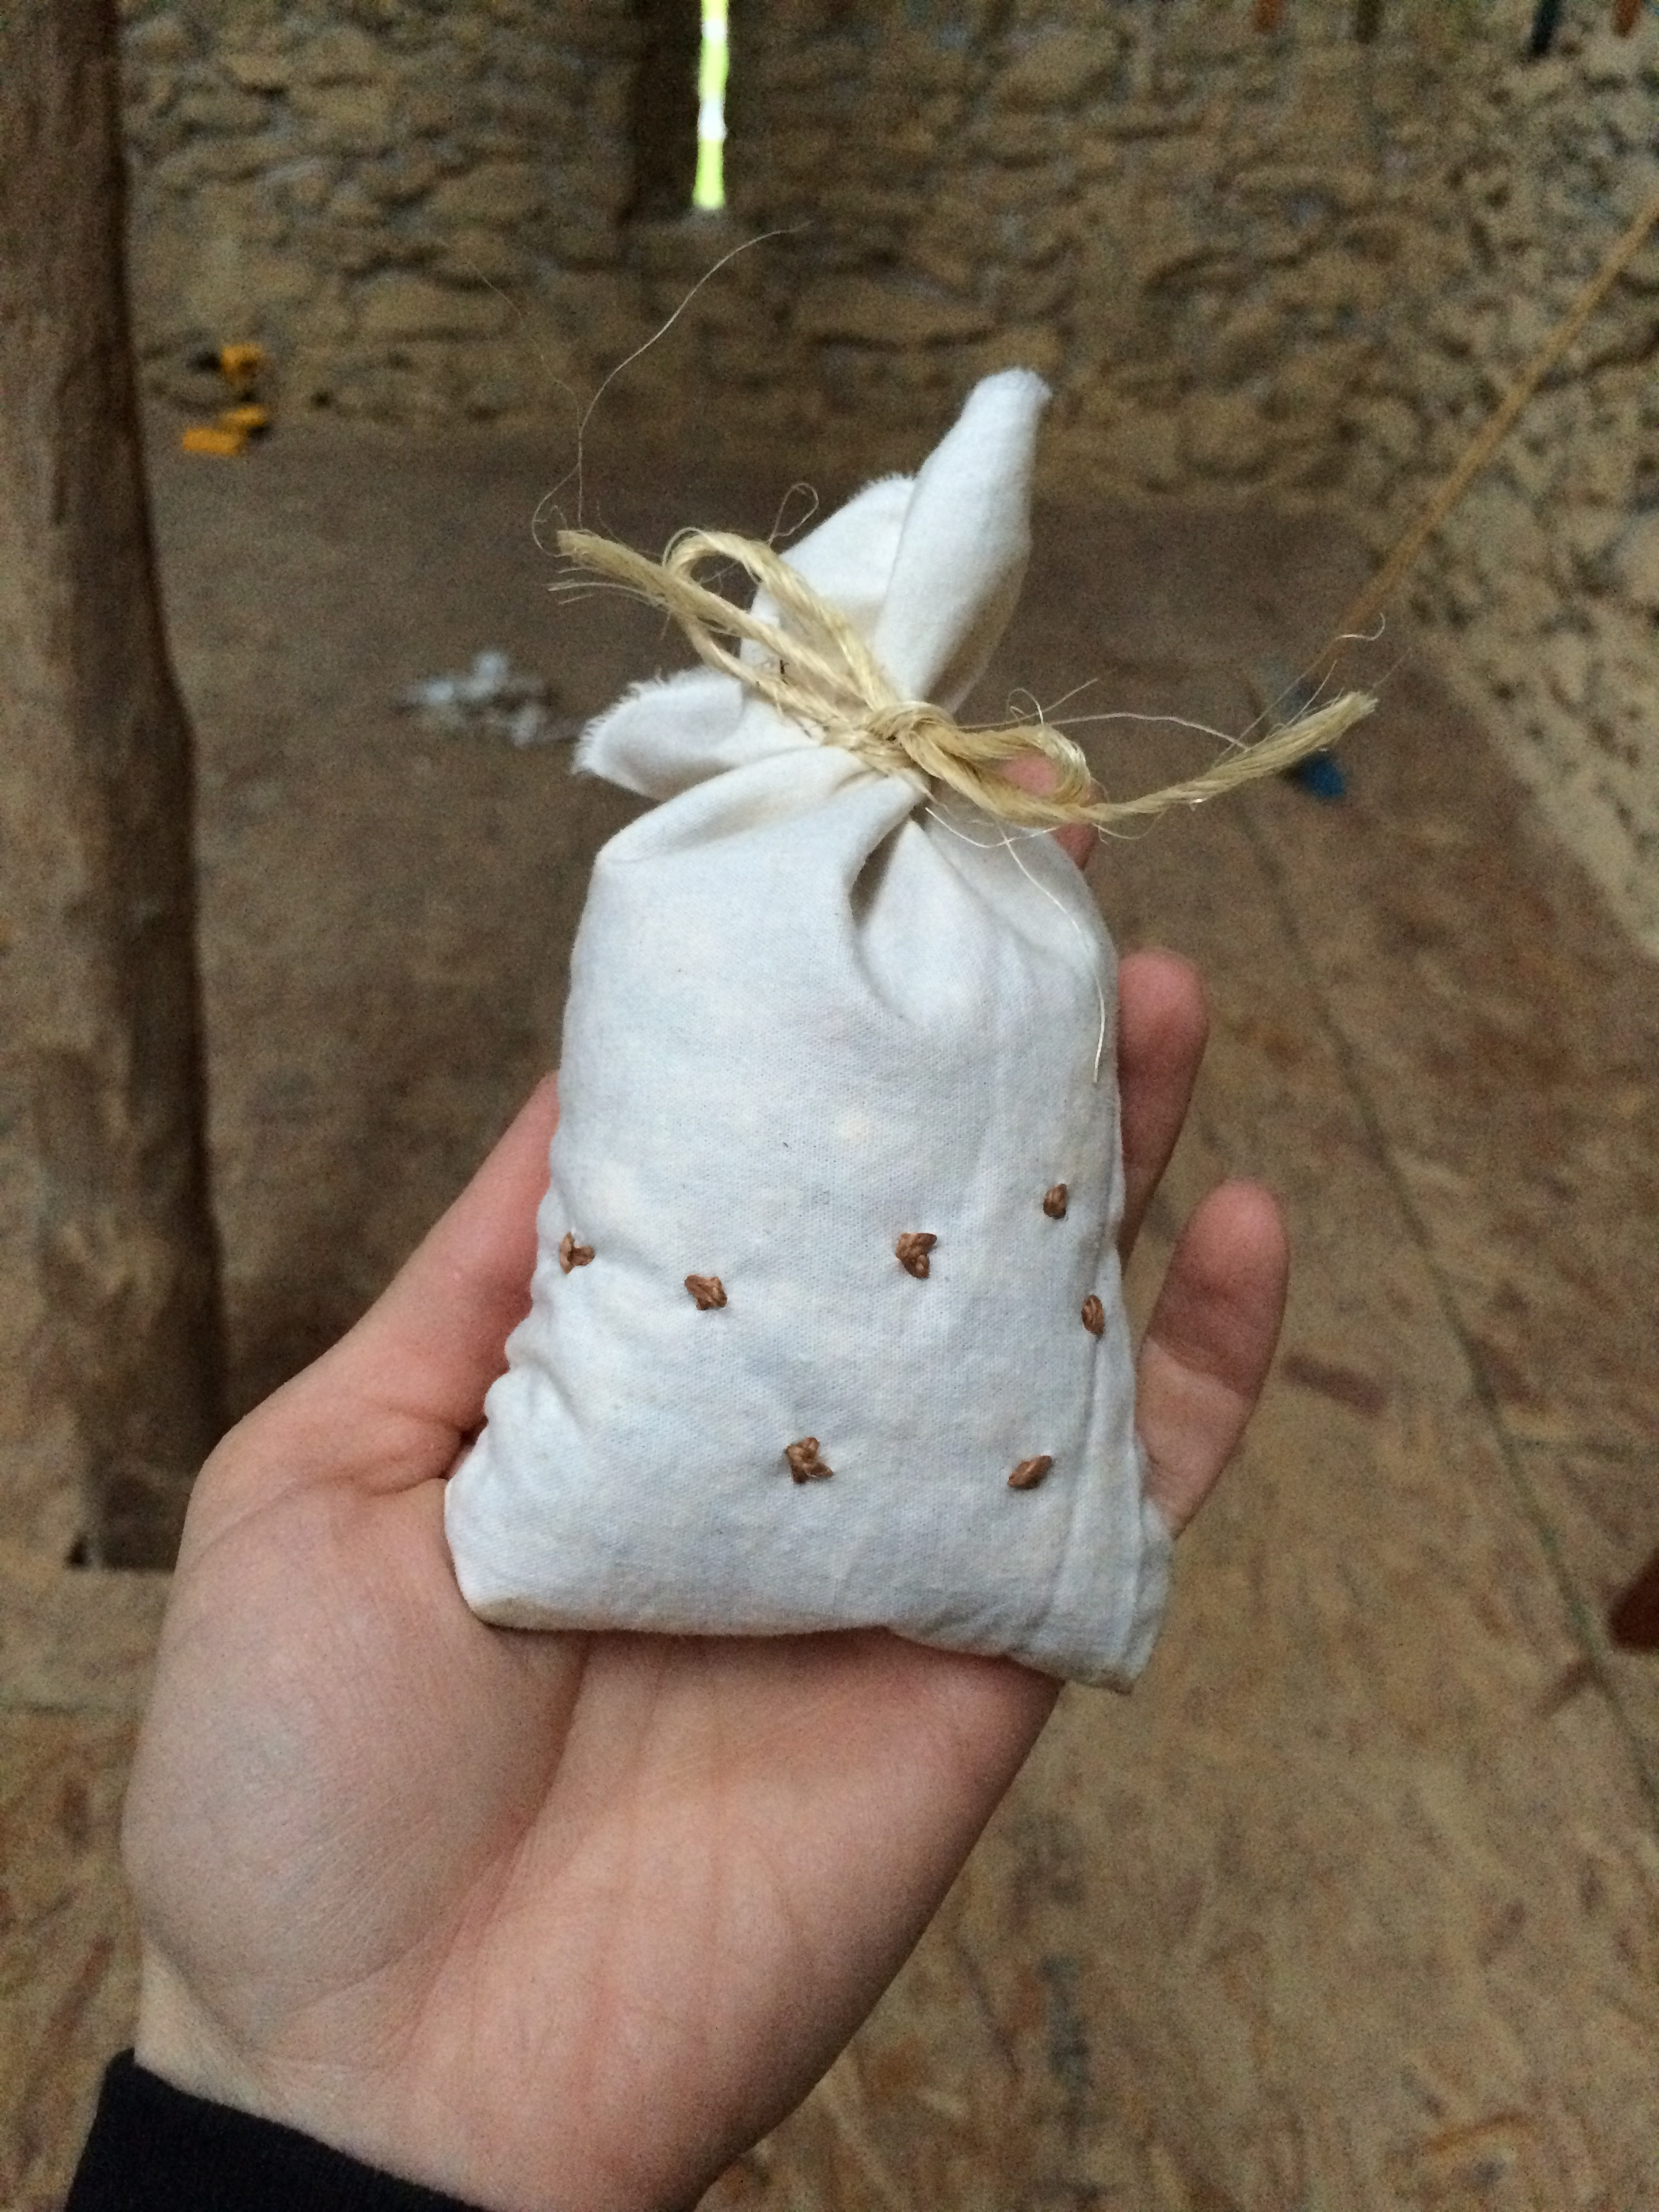 Seed bag (embroidered with Pleiades constellation) for humans to refill feeders.